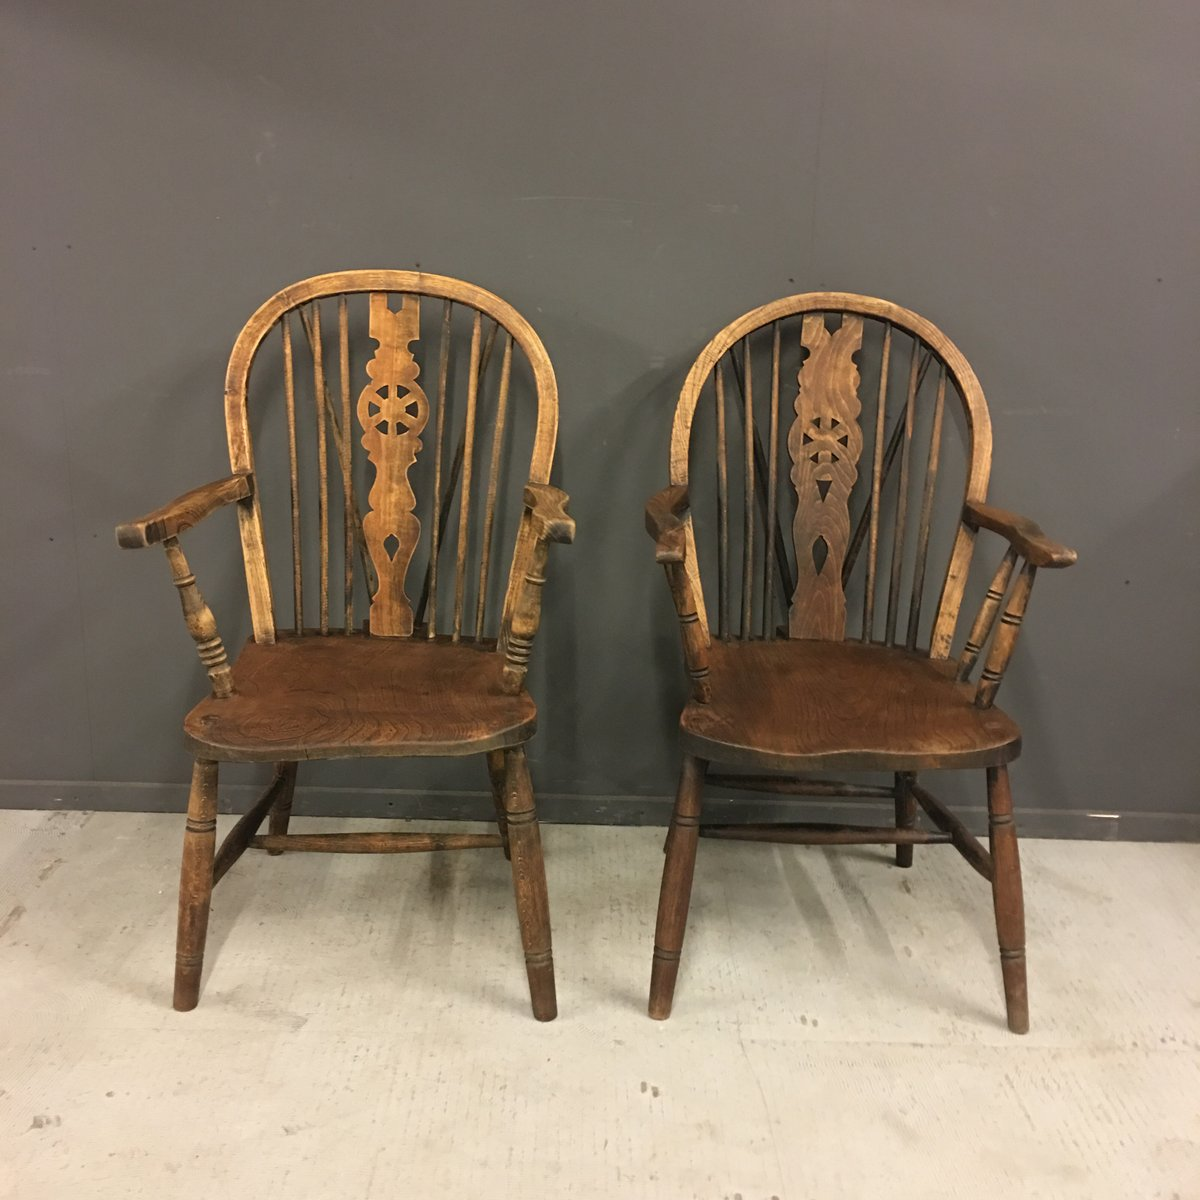 Antique Windsor Chairs, Set of 2 - Antique Windsor Chairs, Set Of 2 For Sale At Pamono